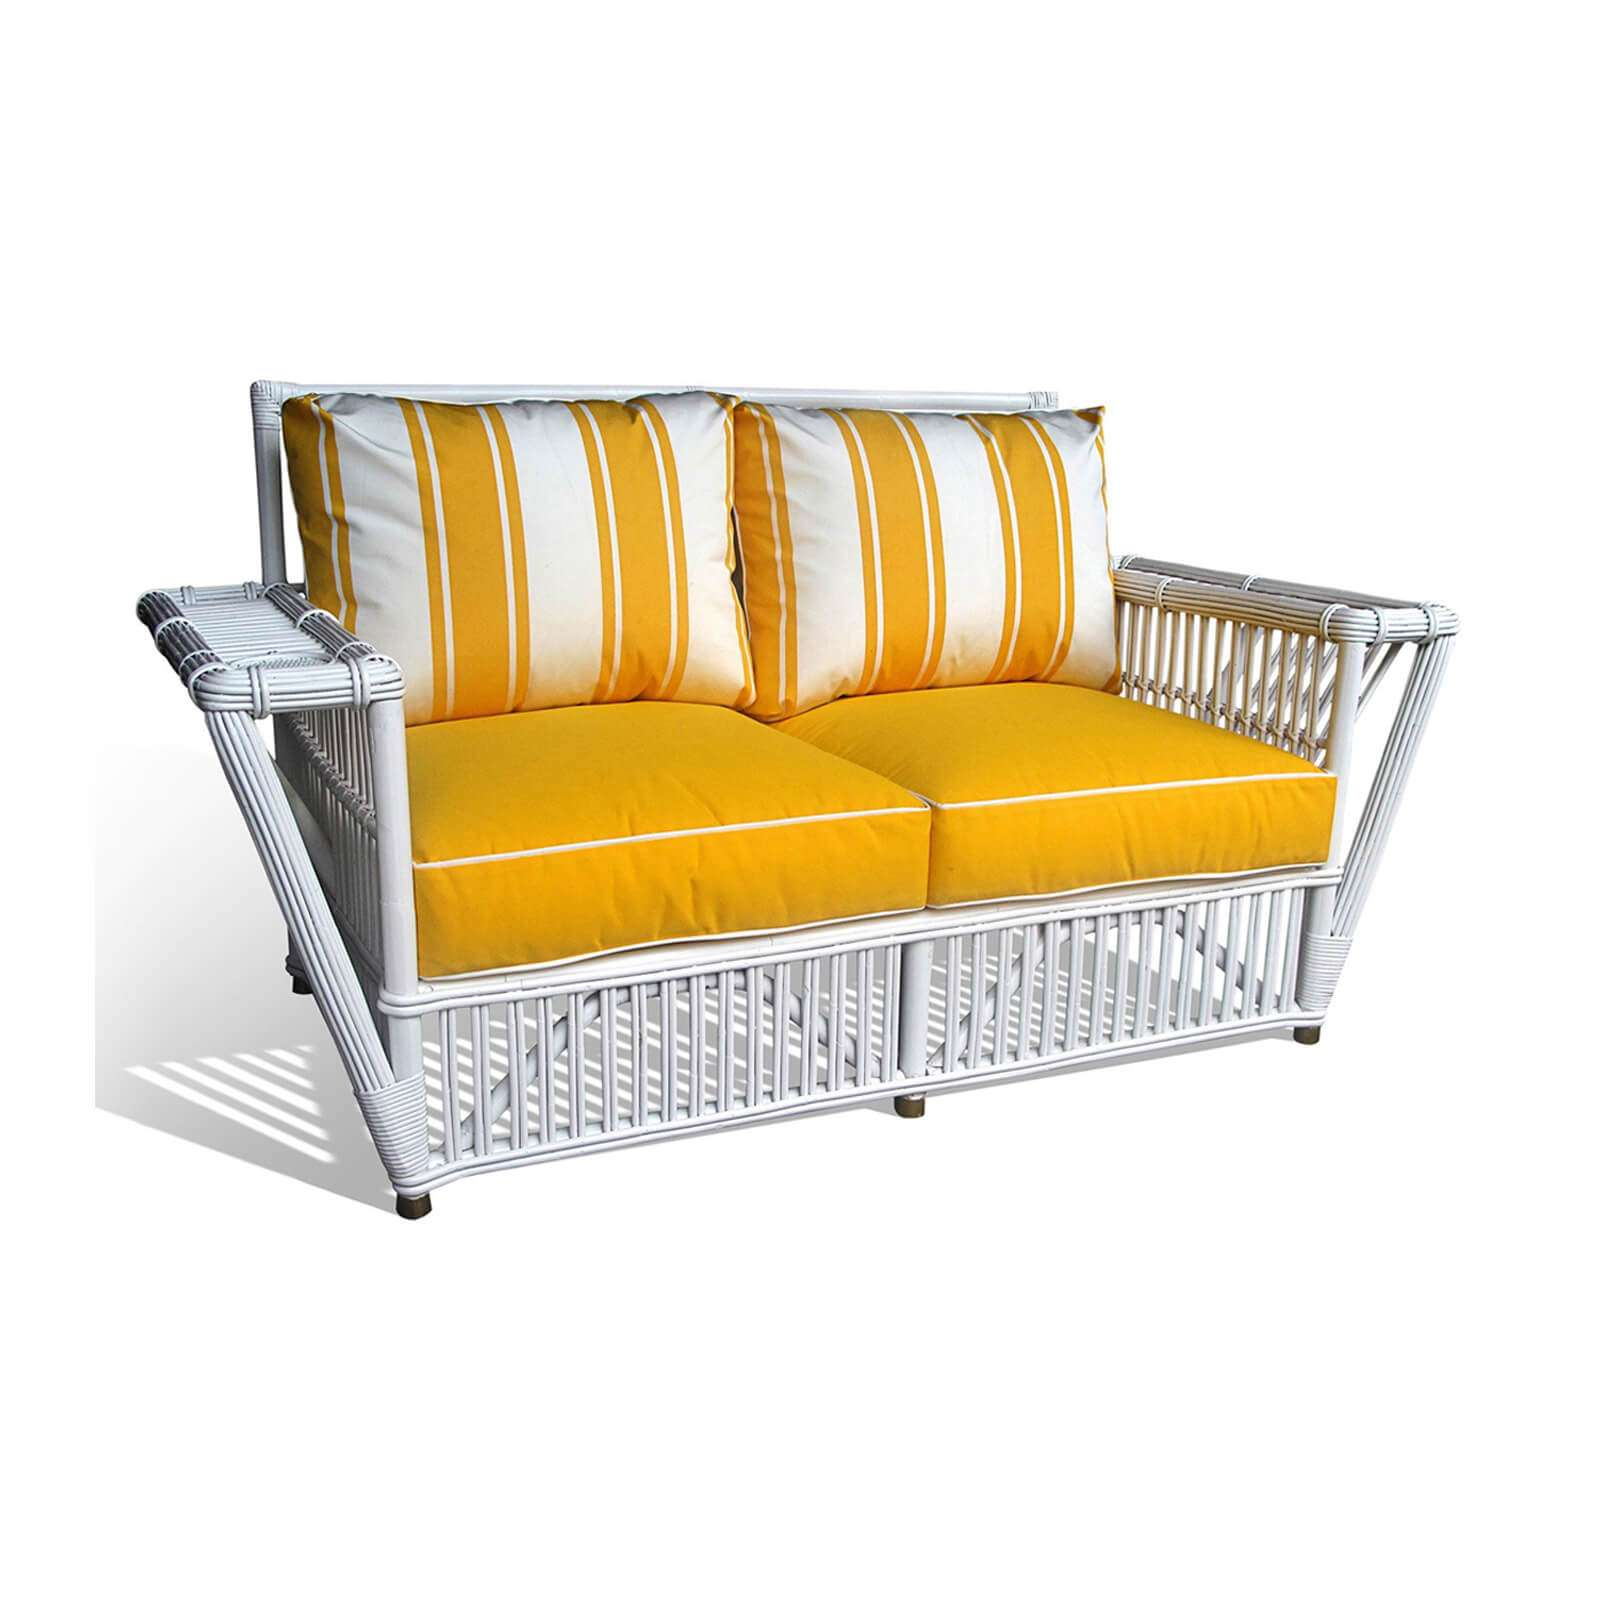 BUNGALOW LOVE SEAT